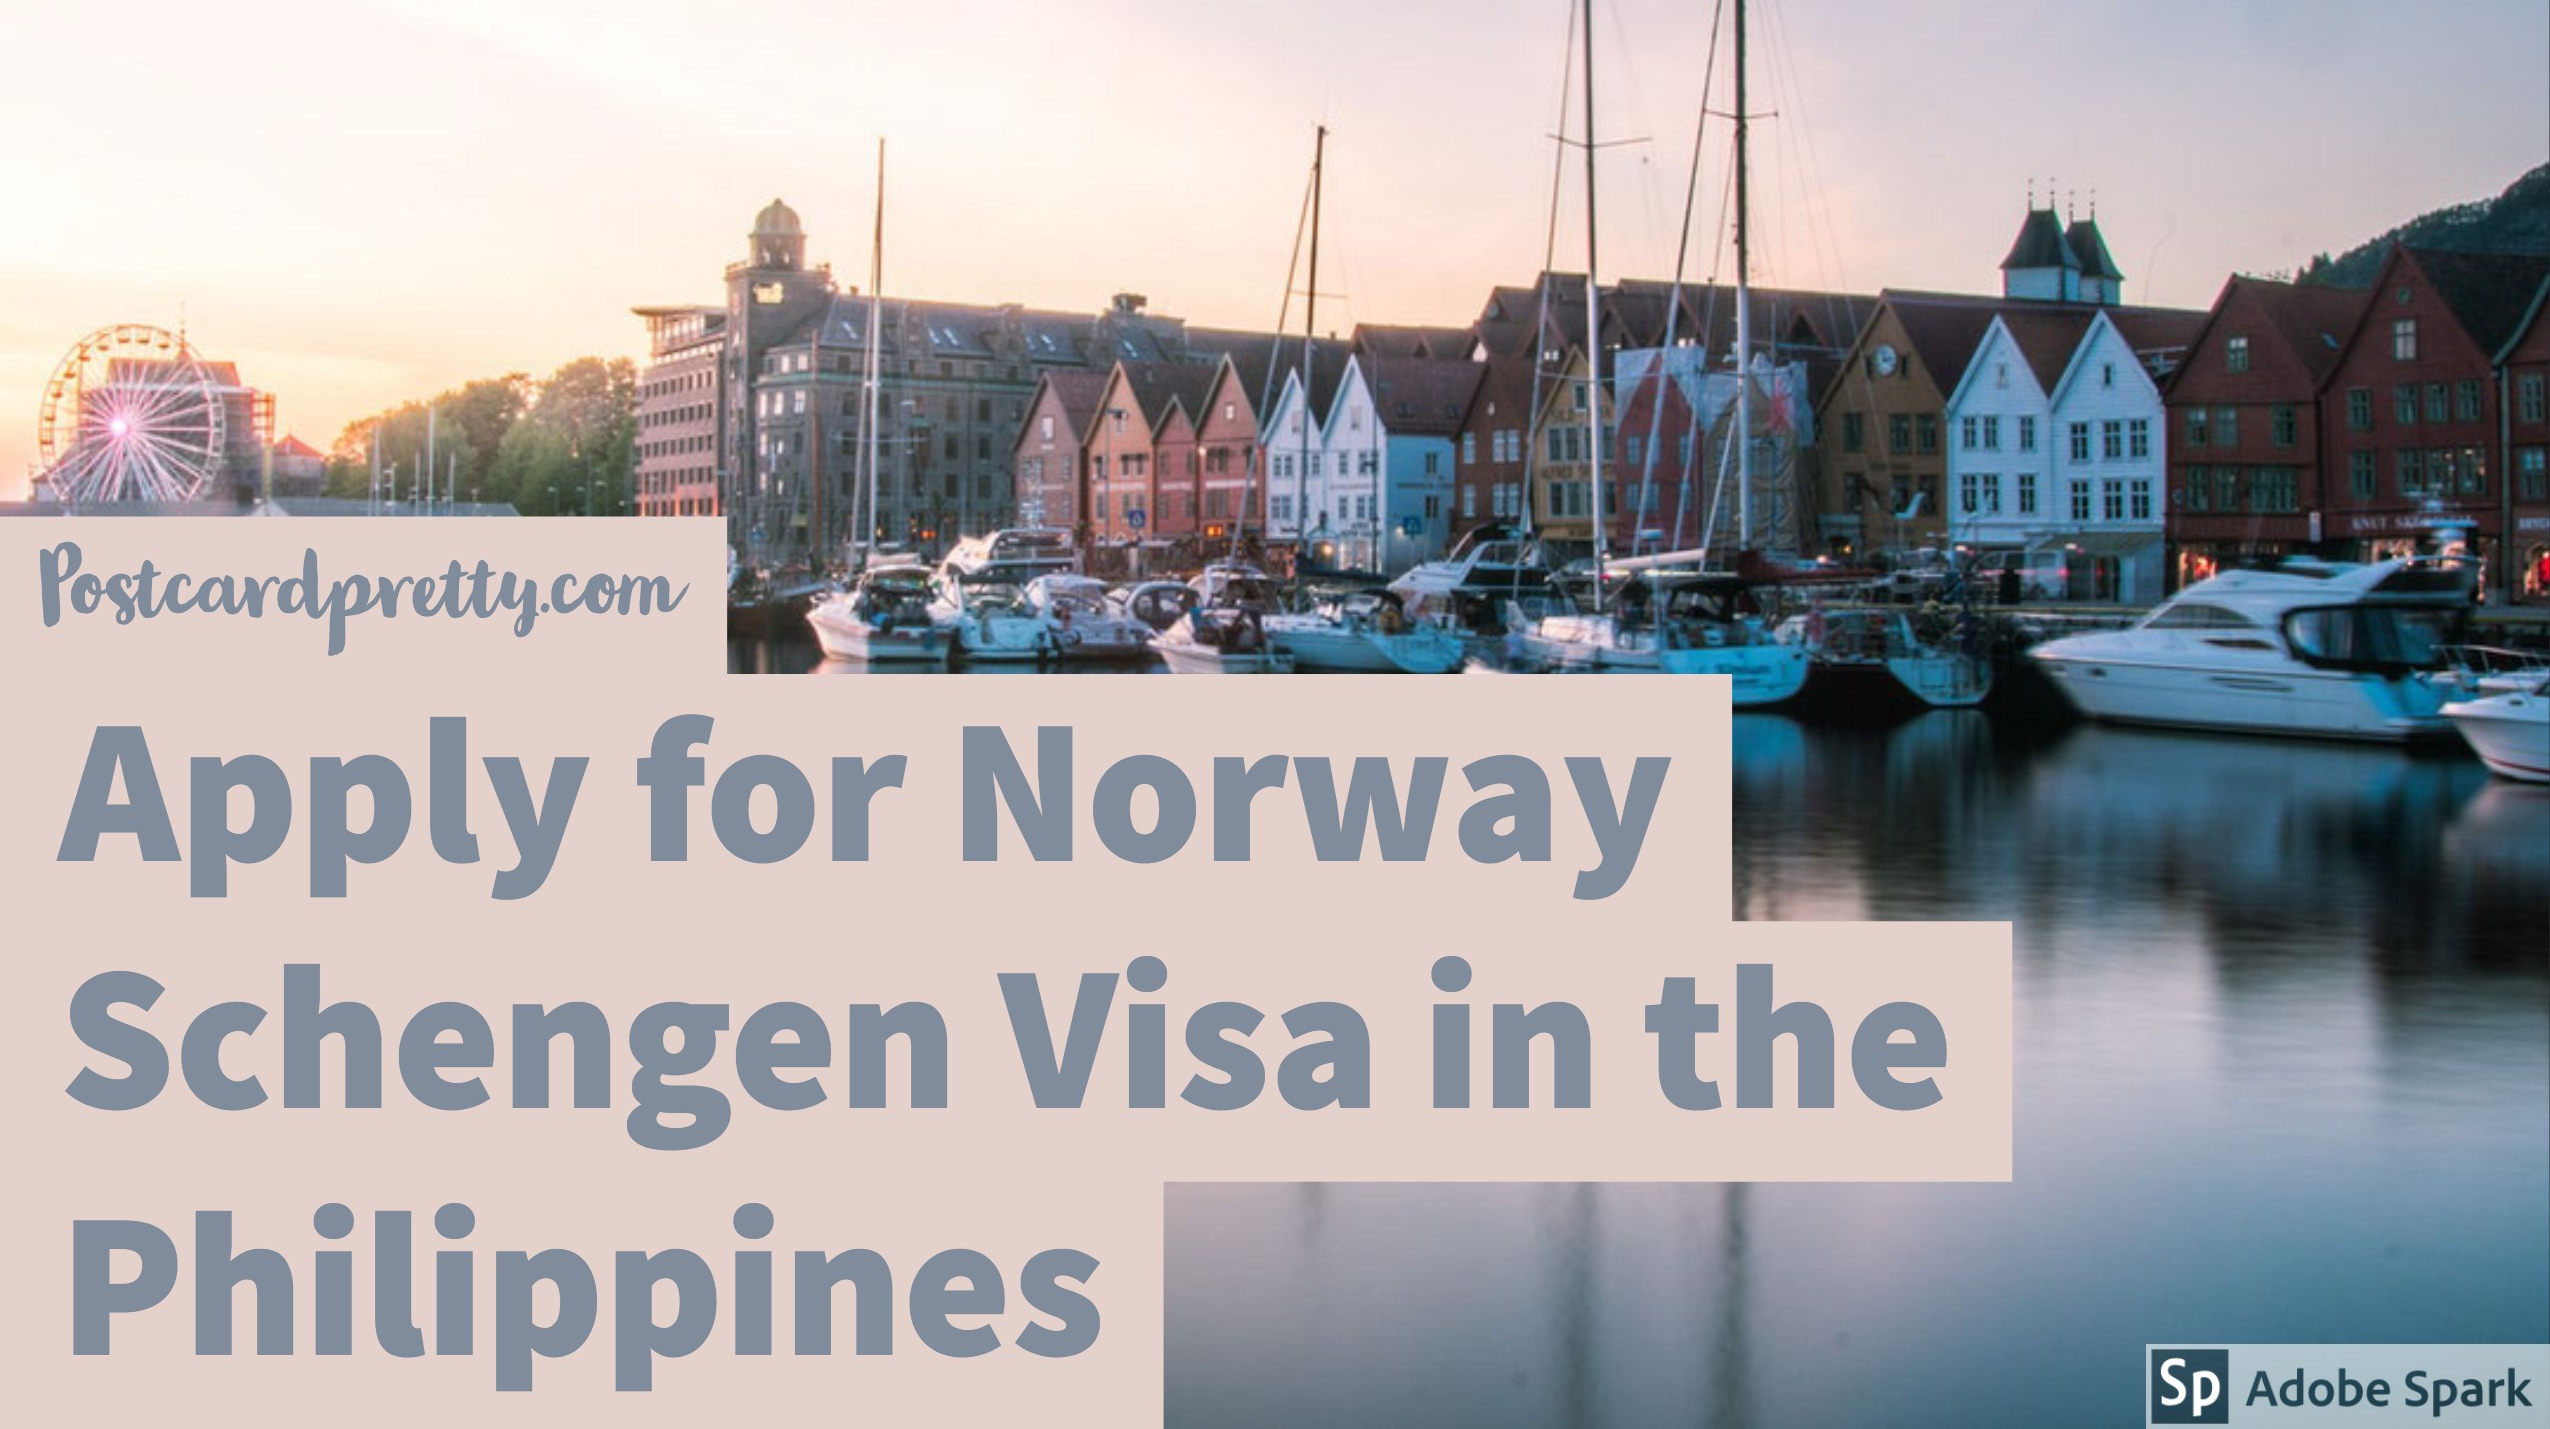 norway schengen visa guide philippines